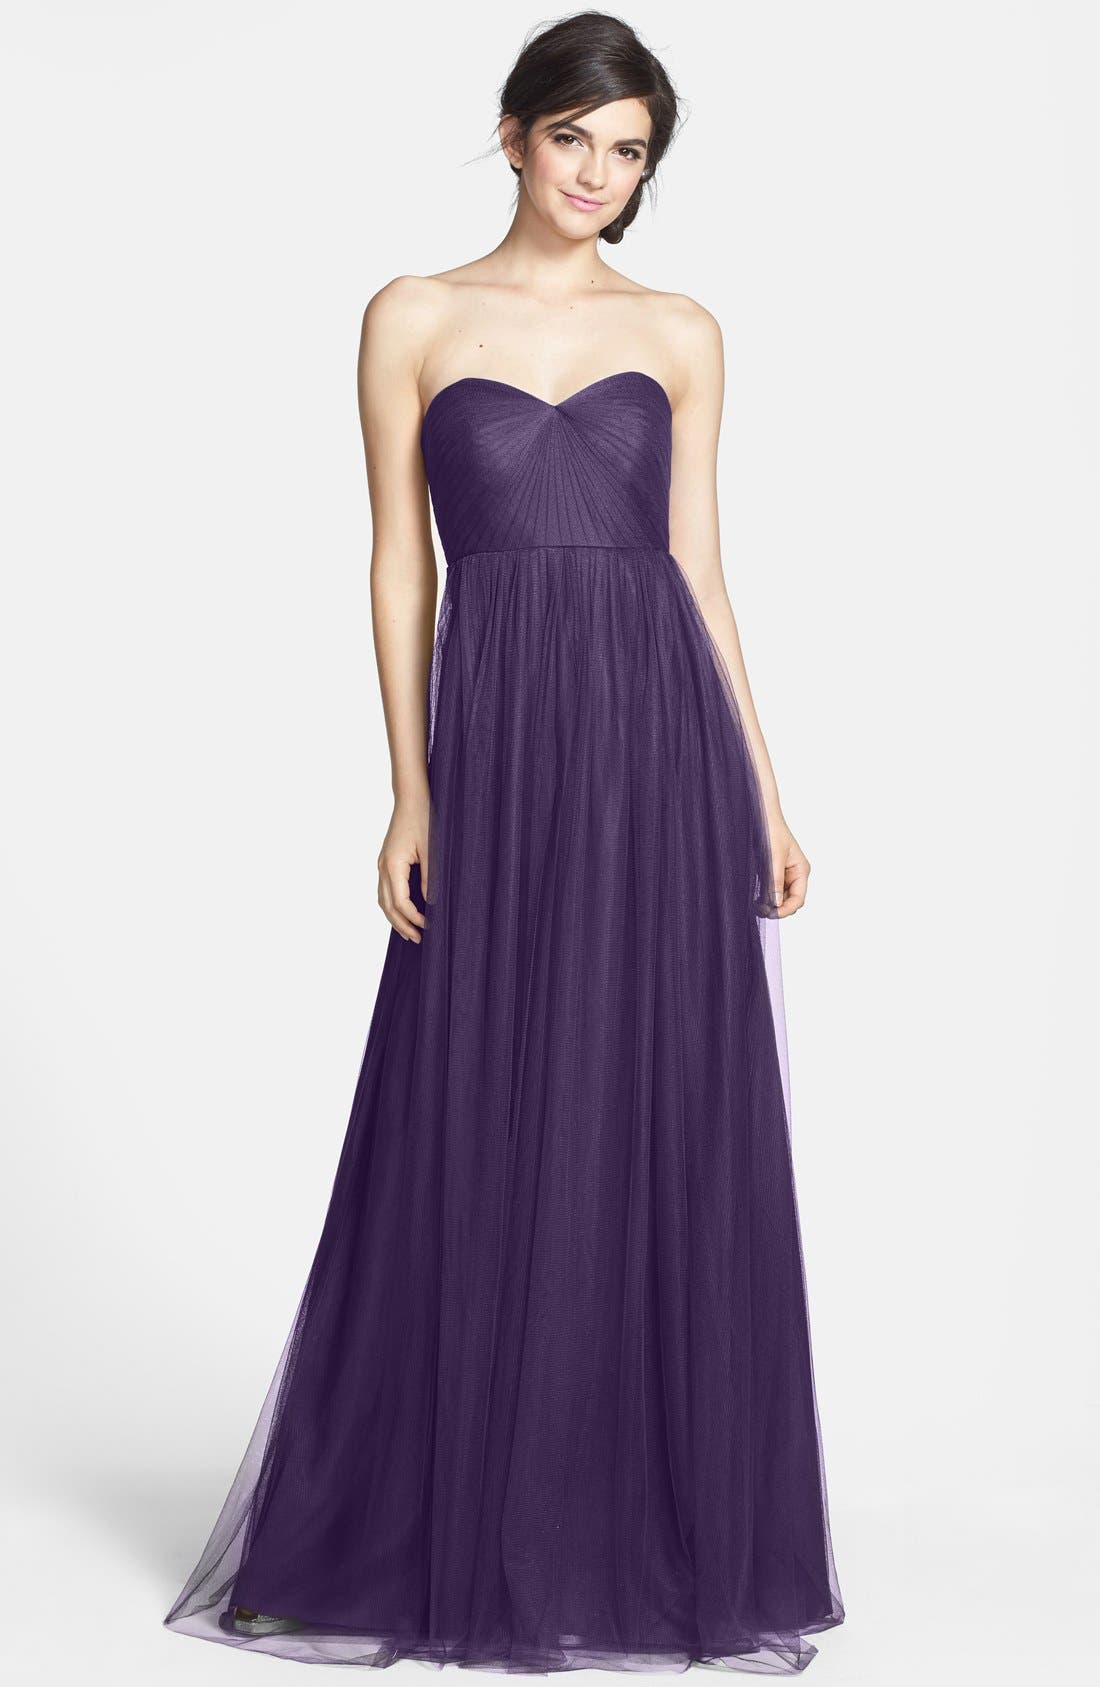 Annabelle Convertible Tulle Column Dress,                             Main thumbnail 26, color,